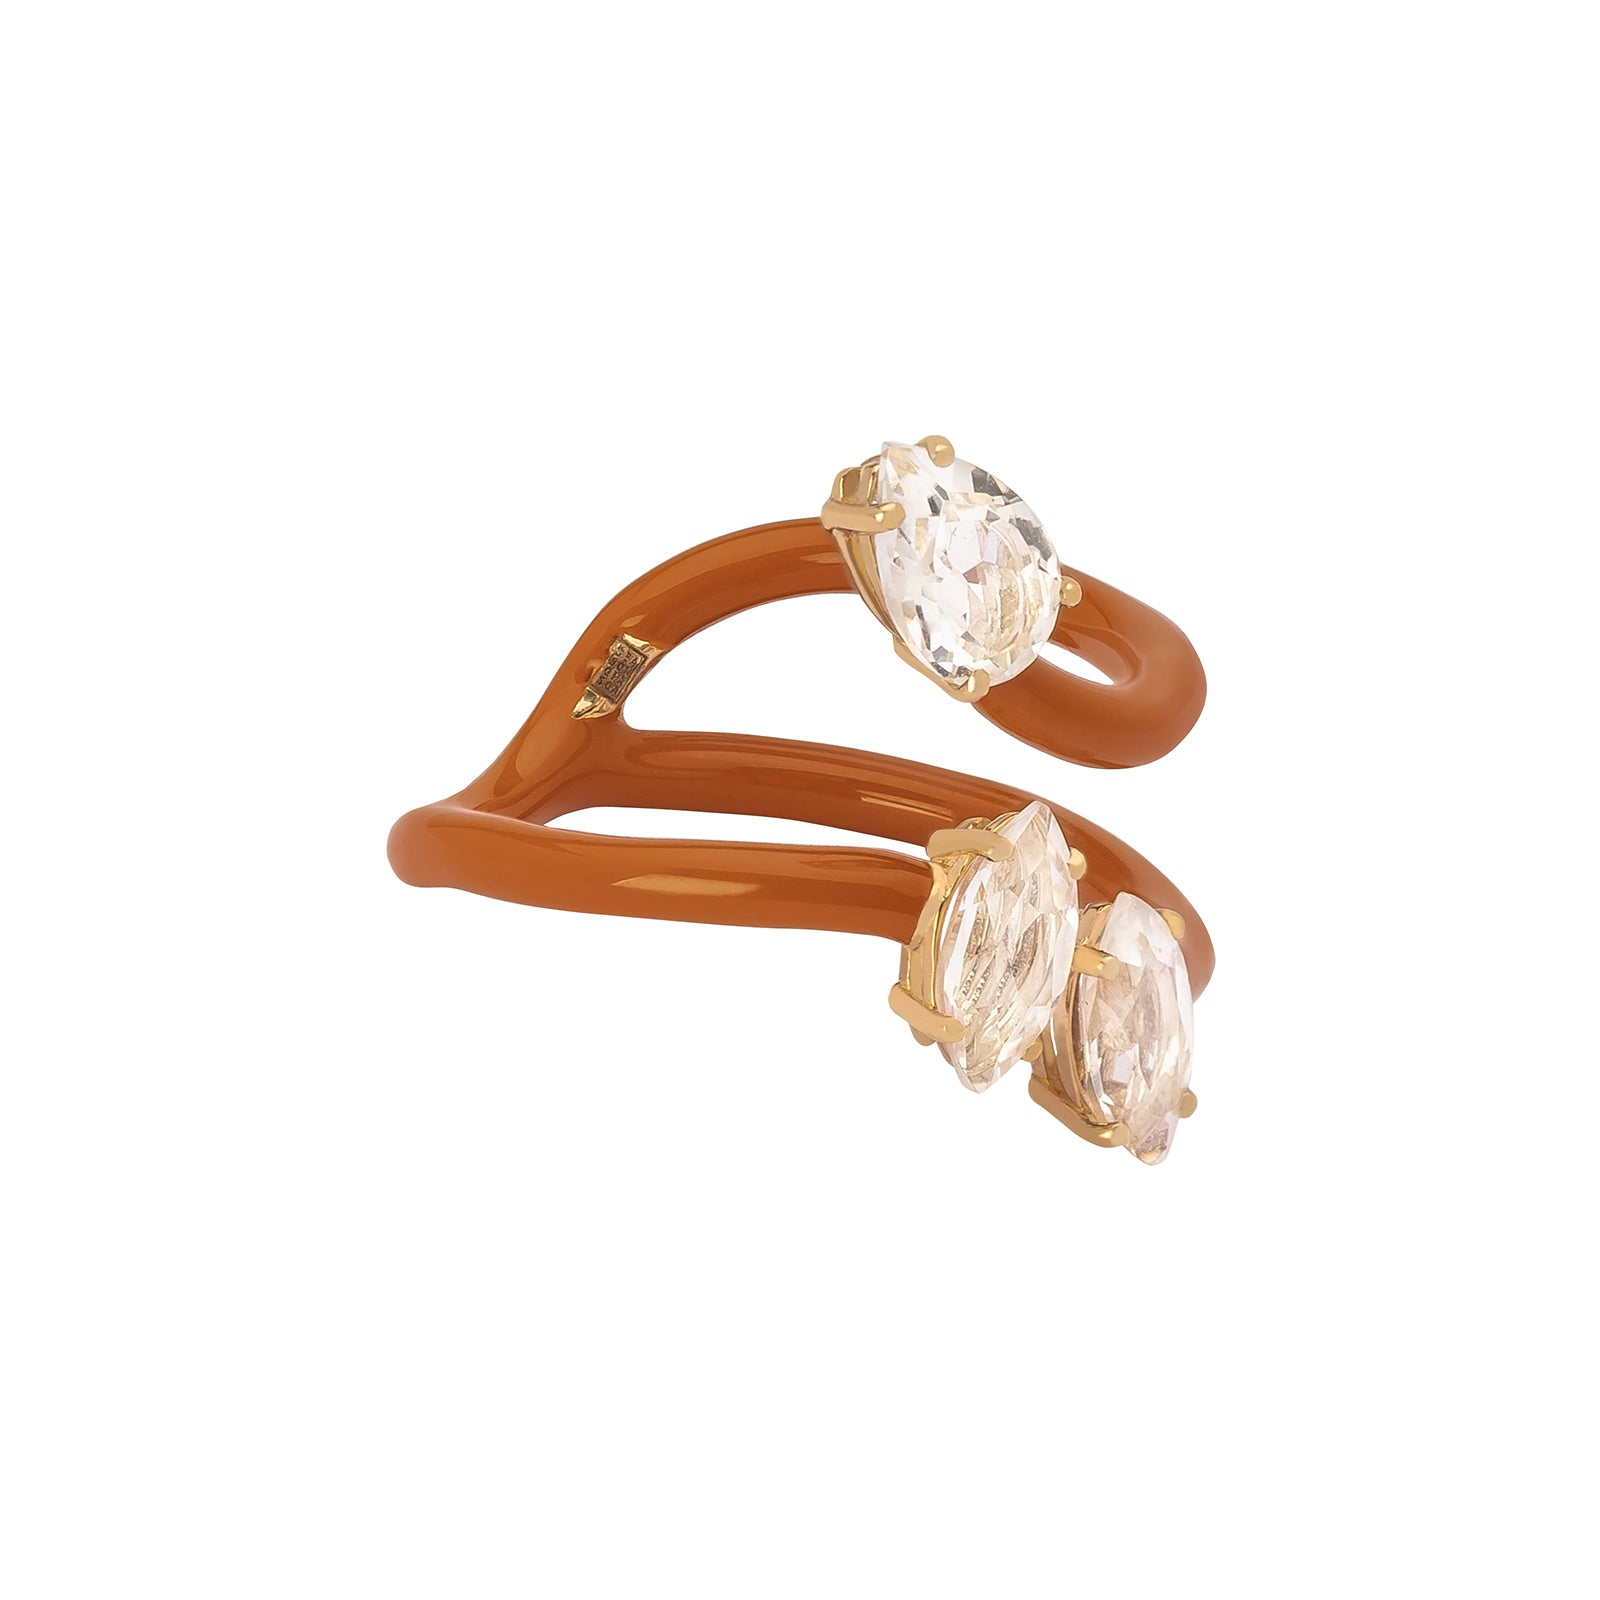 Bea Bongiasca Composable Vine Ring - Orange Enamel - Rings - Broken English Jewelry